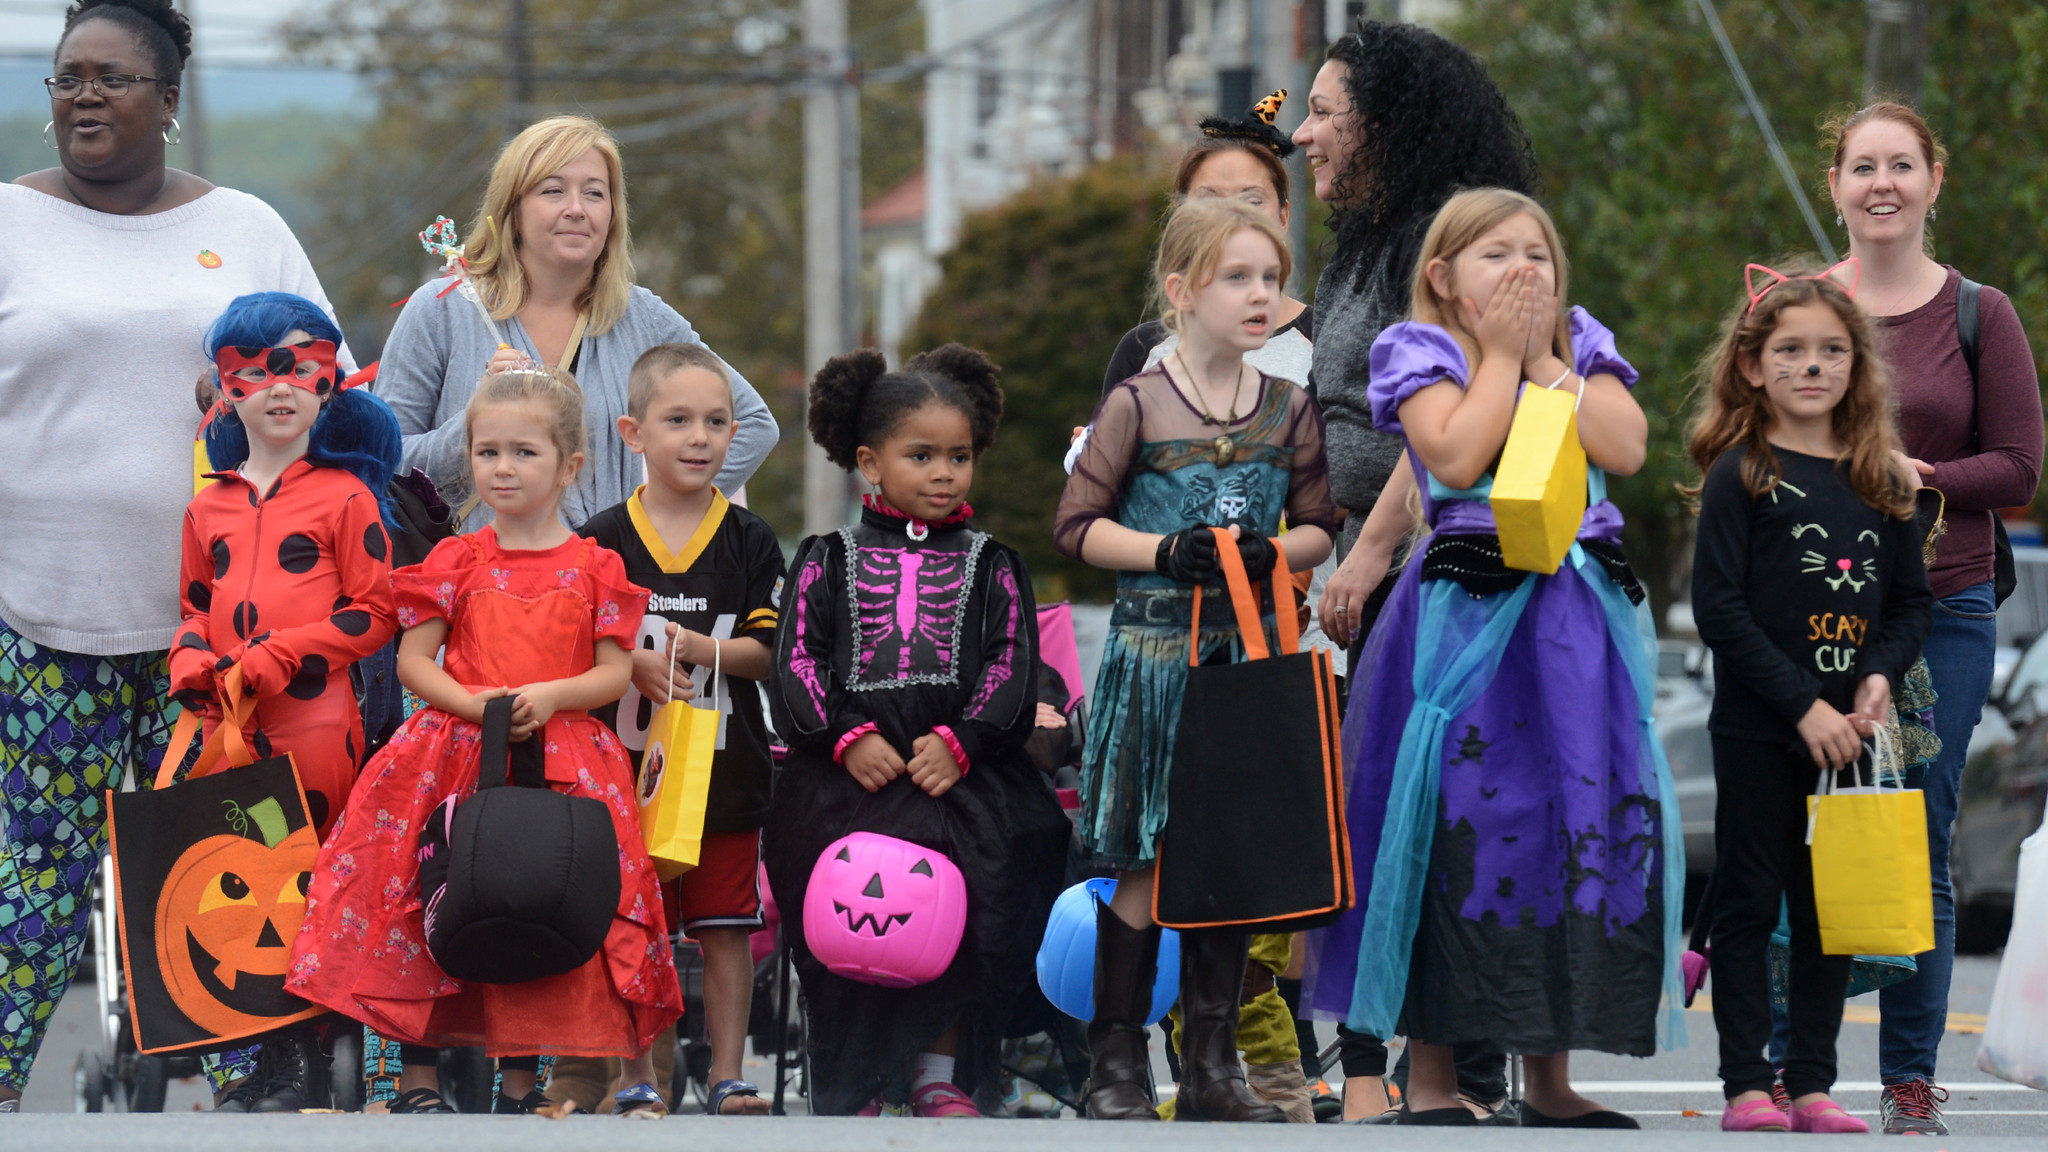 The 2017 Allentown Halloween Parade - The Morning Call